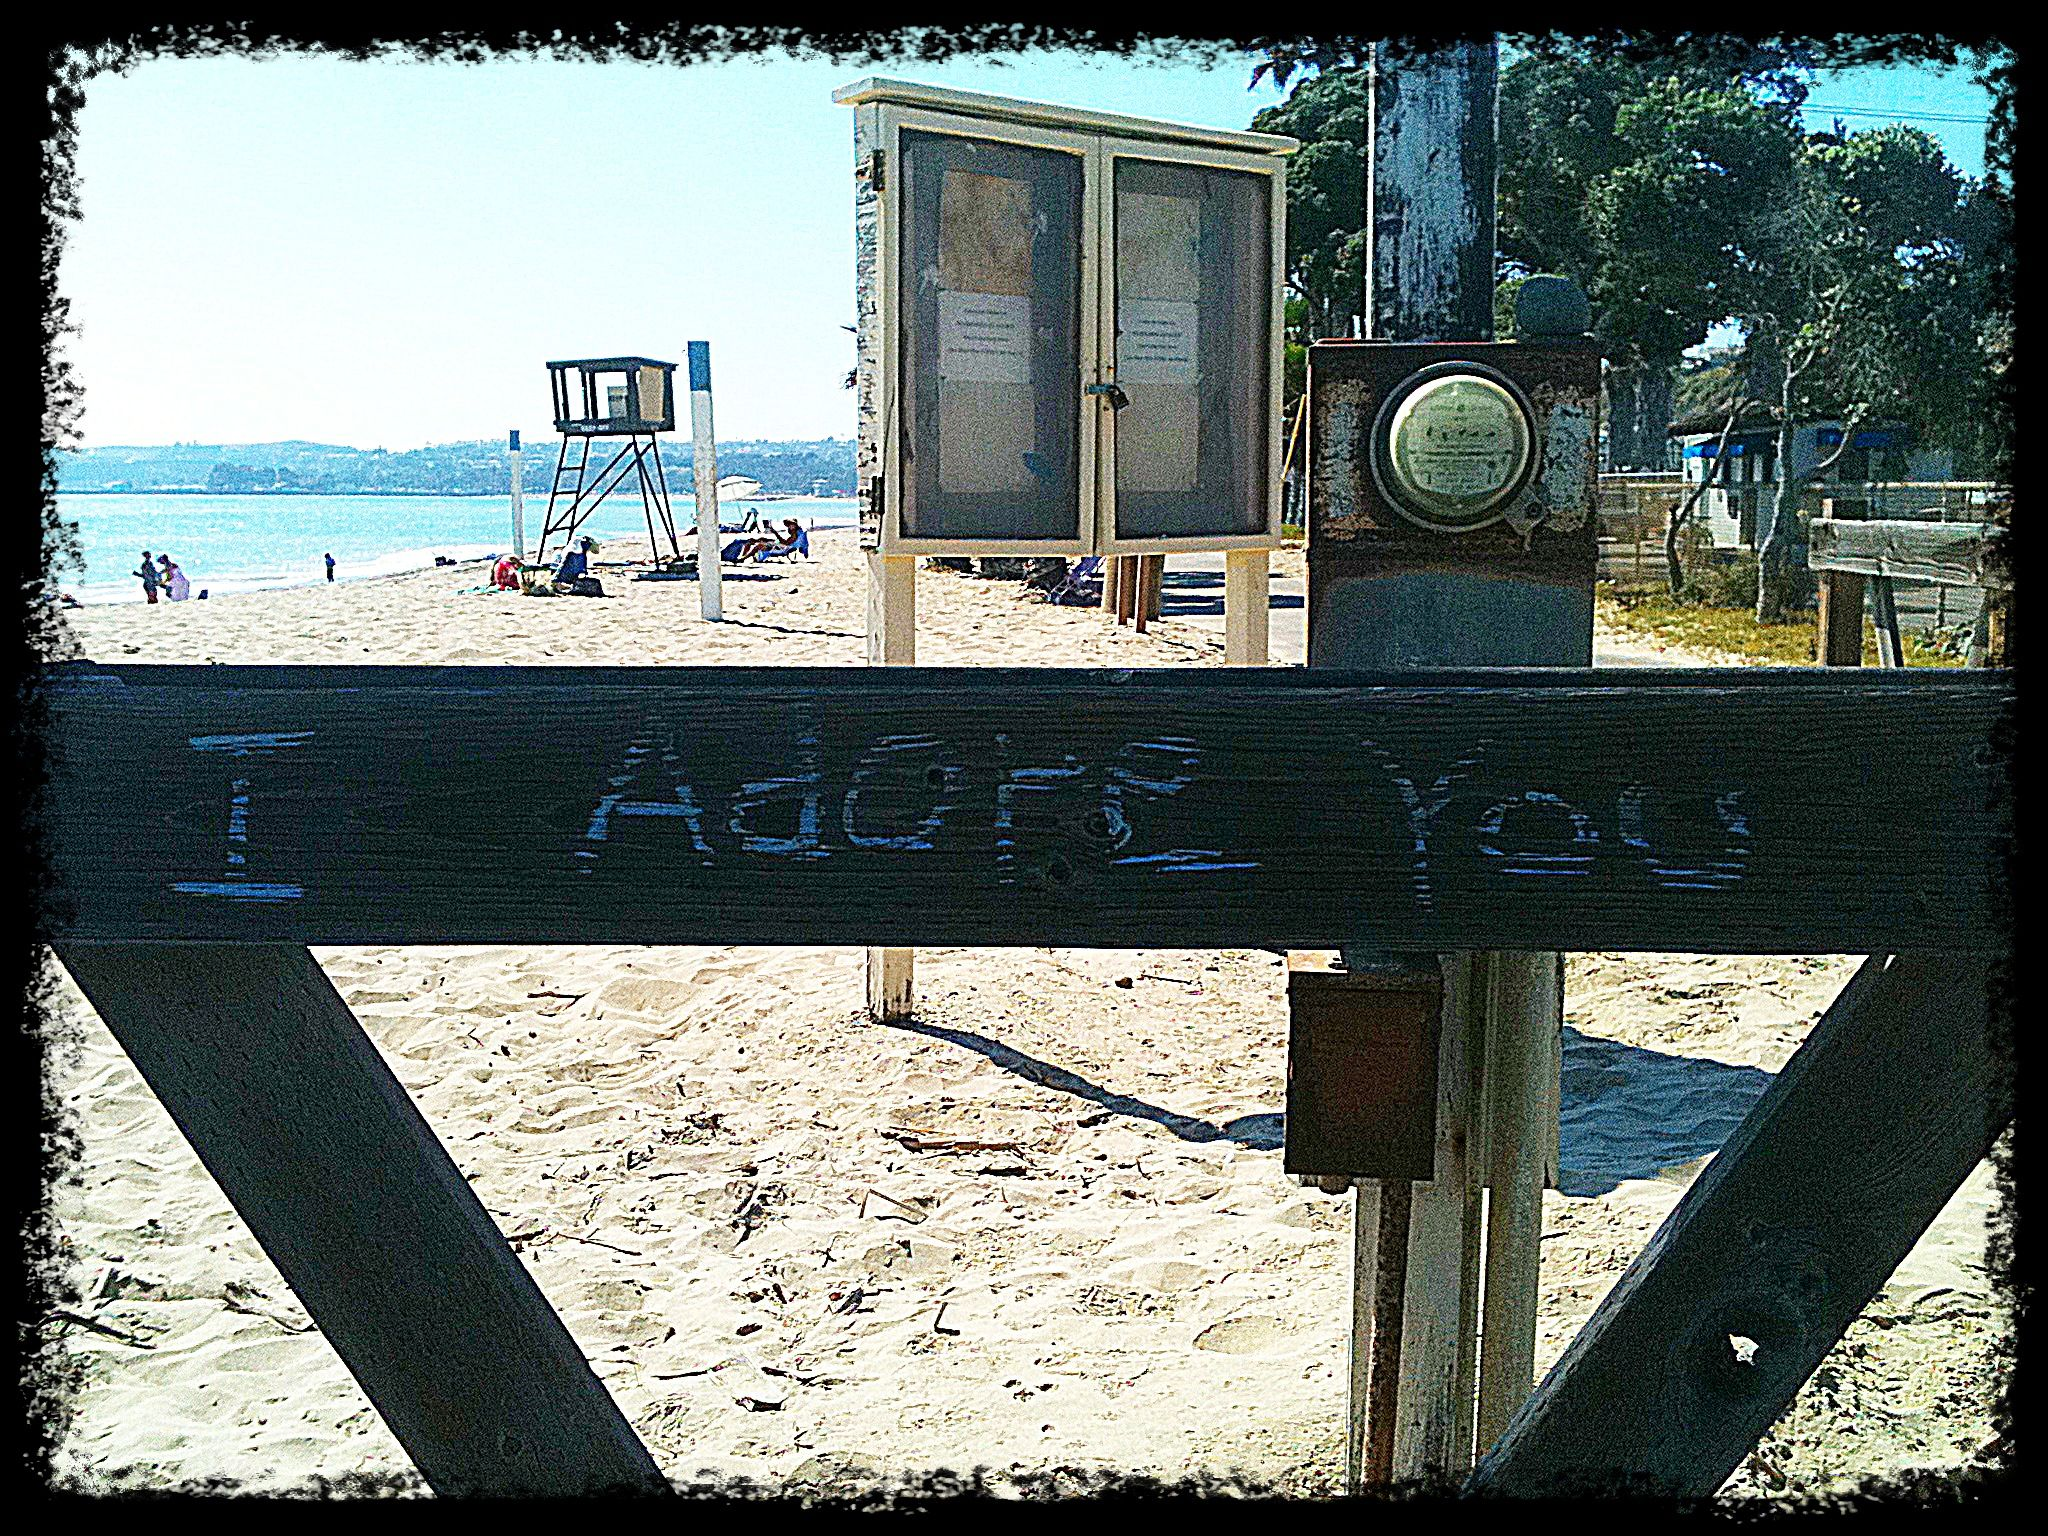 I was walking one day and this was written on the fence at the beach <3 i loved it!!